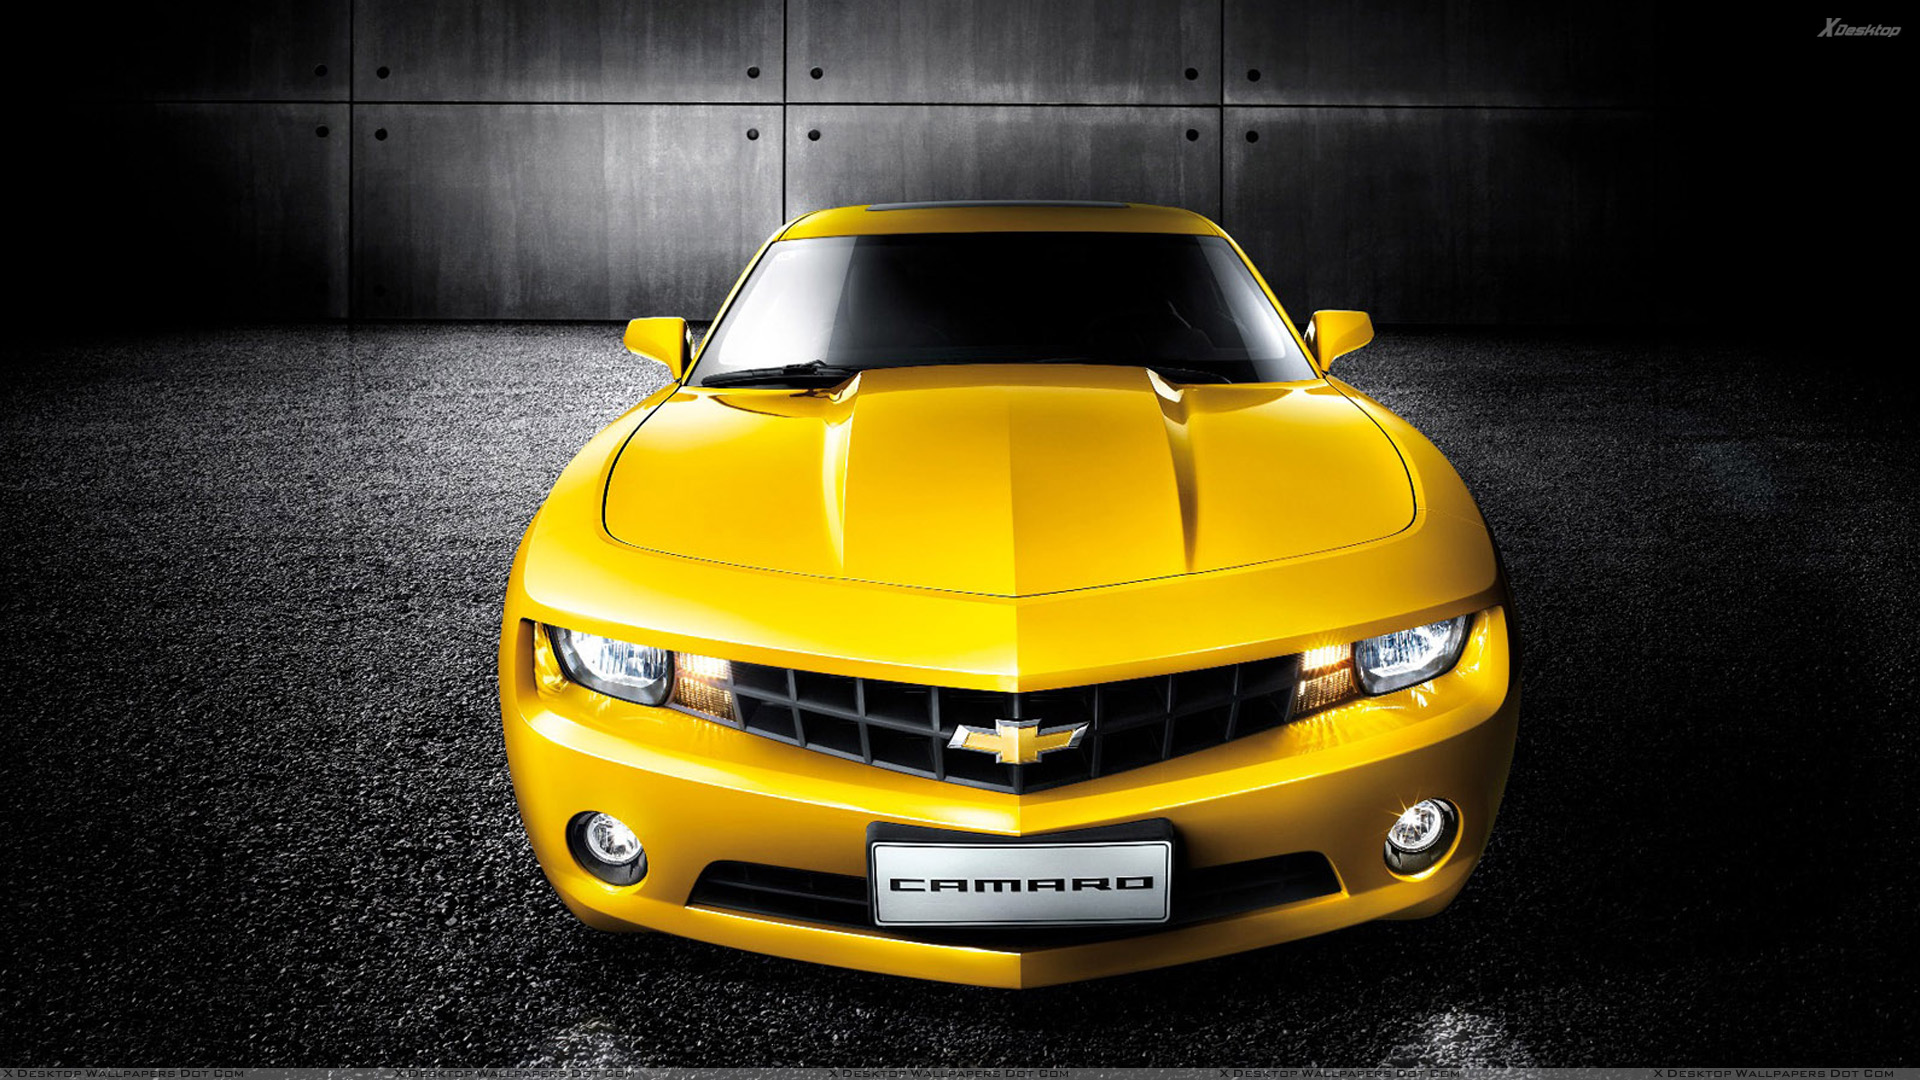 Black And Yellow Exotic Cars Wallpaper 20 Cool Wallpaper ...